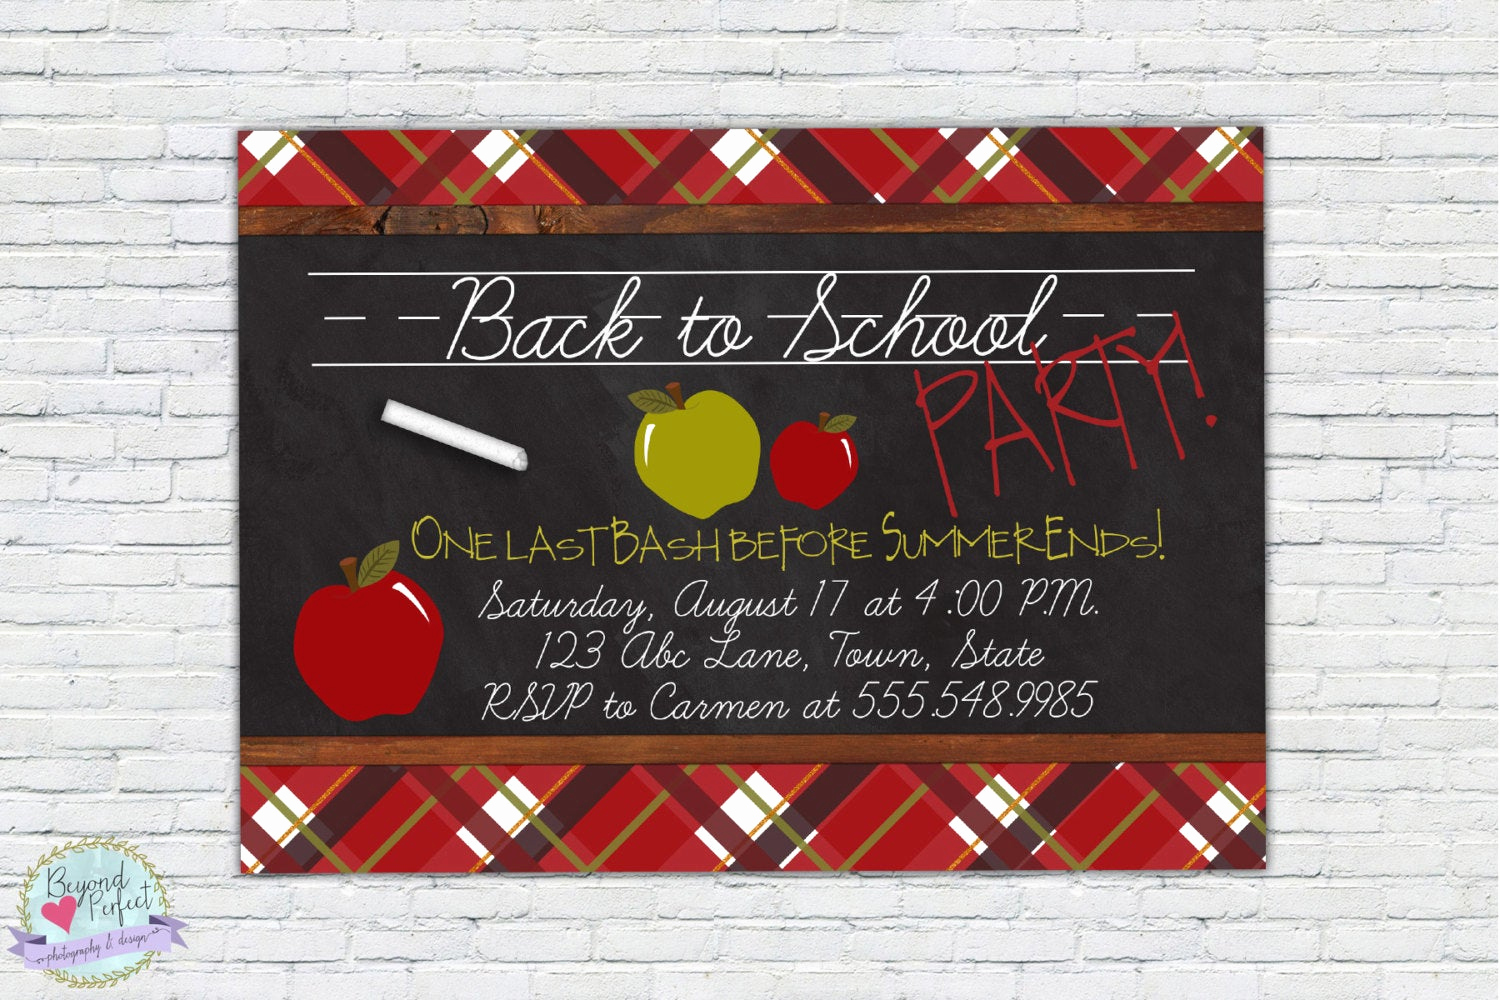 Back to School Party Invitation Awesome Back to School Party Last Summer Bash Party Invitation School